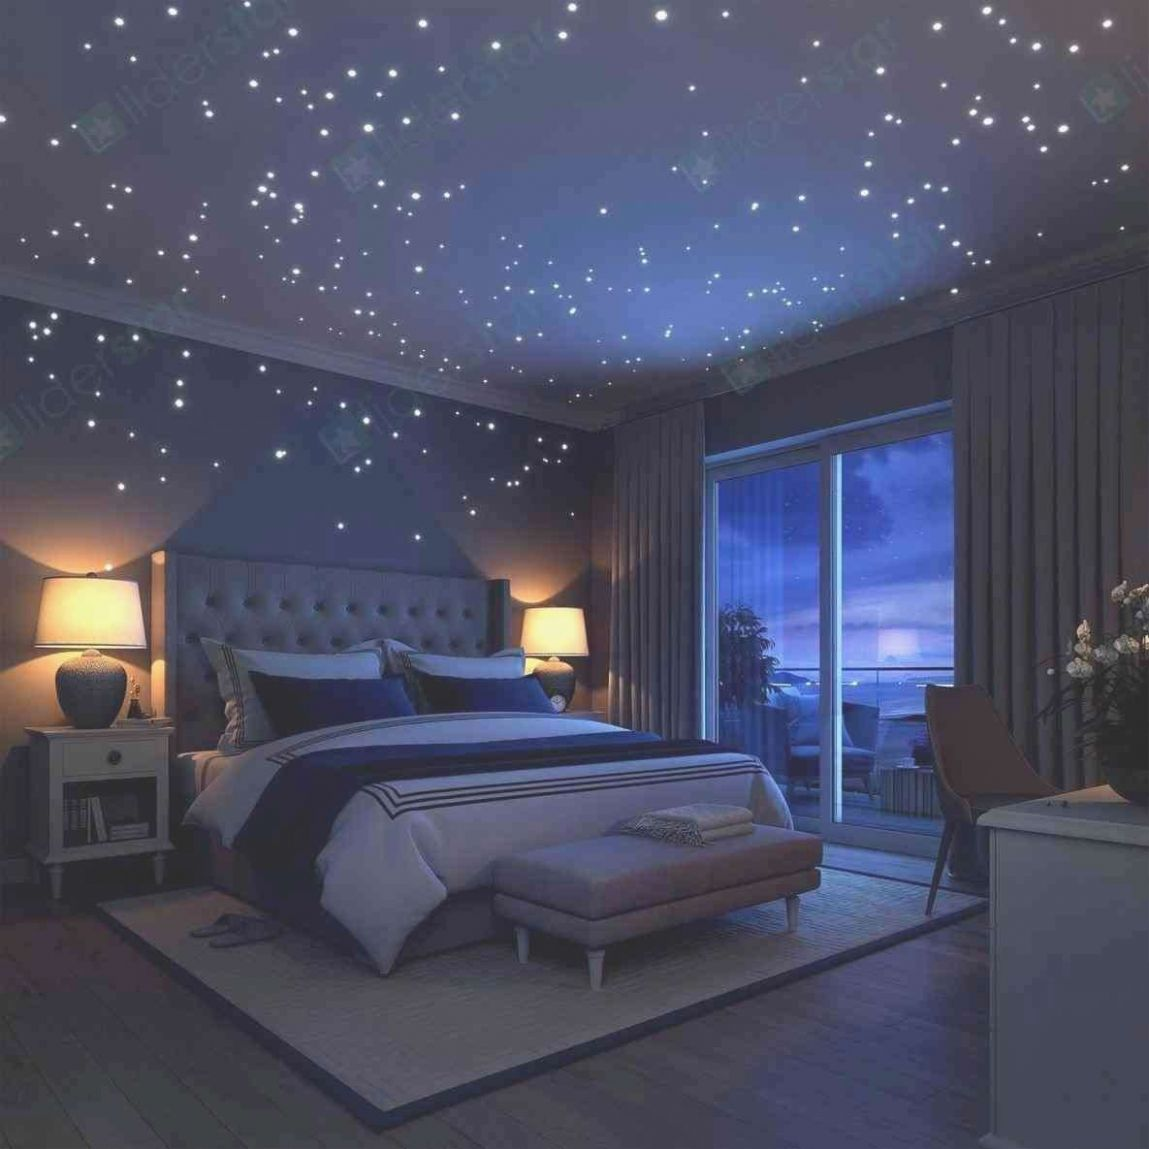 Amazing Romantic Bedroom Ideas for Married Couples with Easy ..